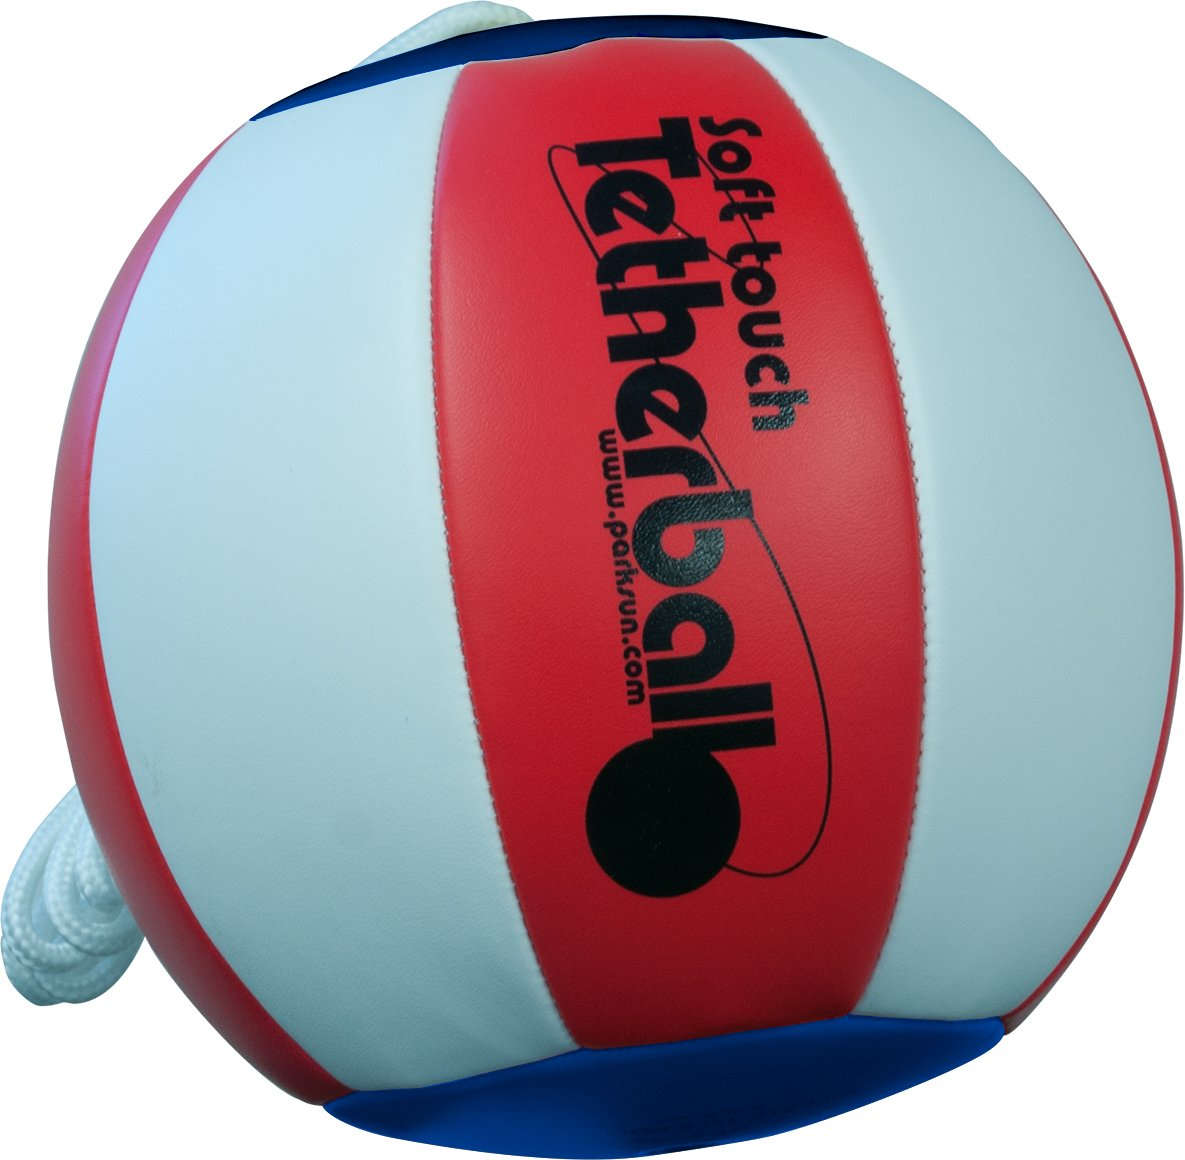 Park & Sun Sports Soft Touch Tetherball with 7' Nylon Cord and Clip Americana (Red White and Blue) Park and Sun Sports BALL-300TB-RWB